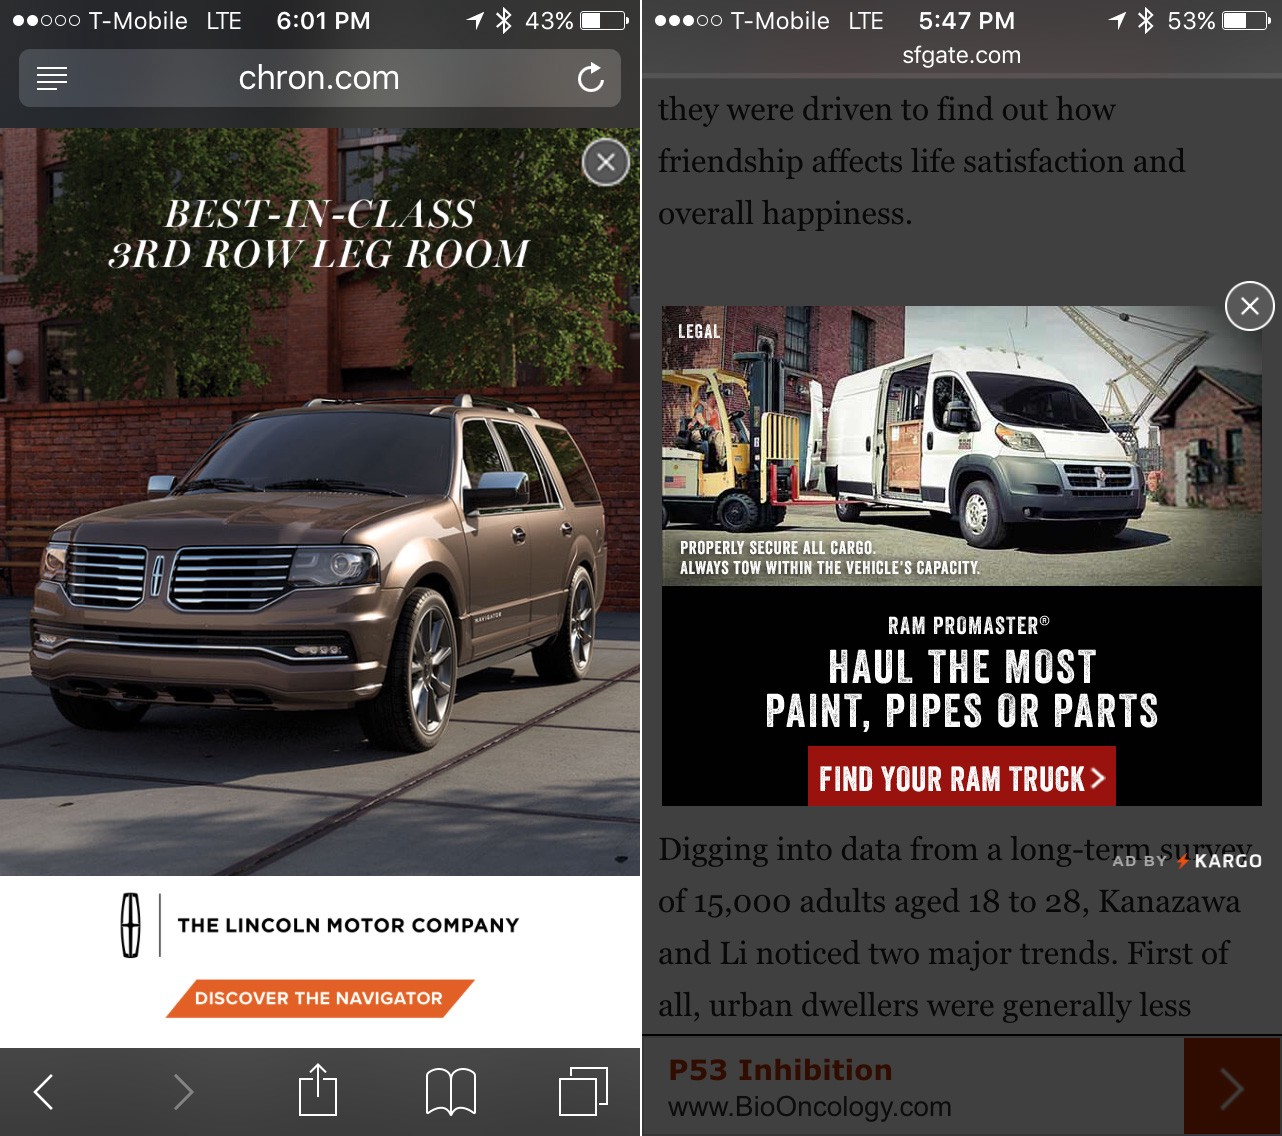 How to find an old ad on Avito